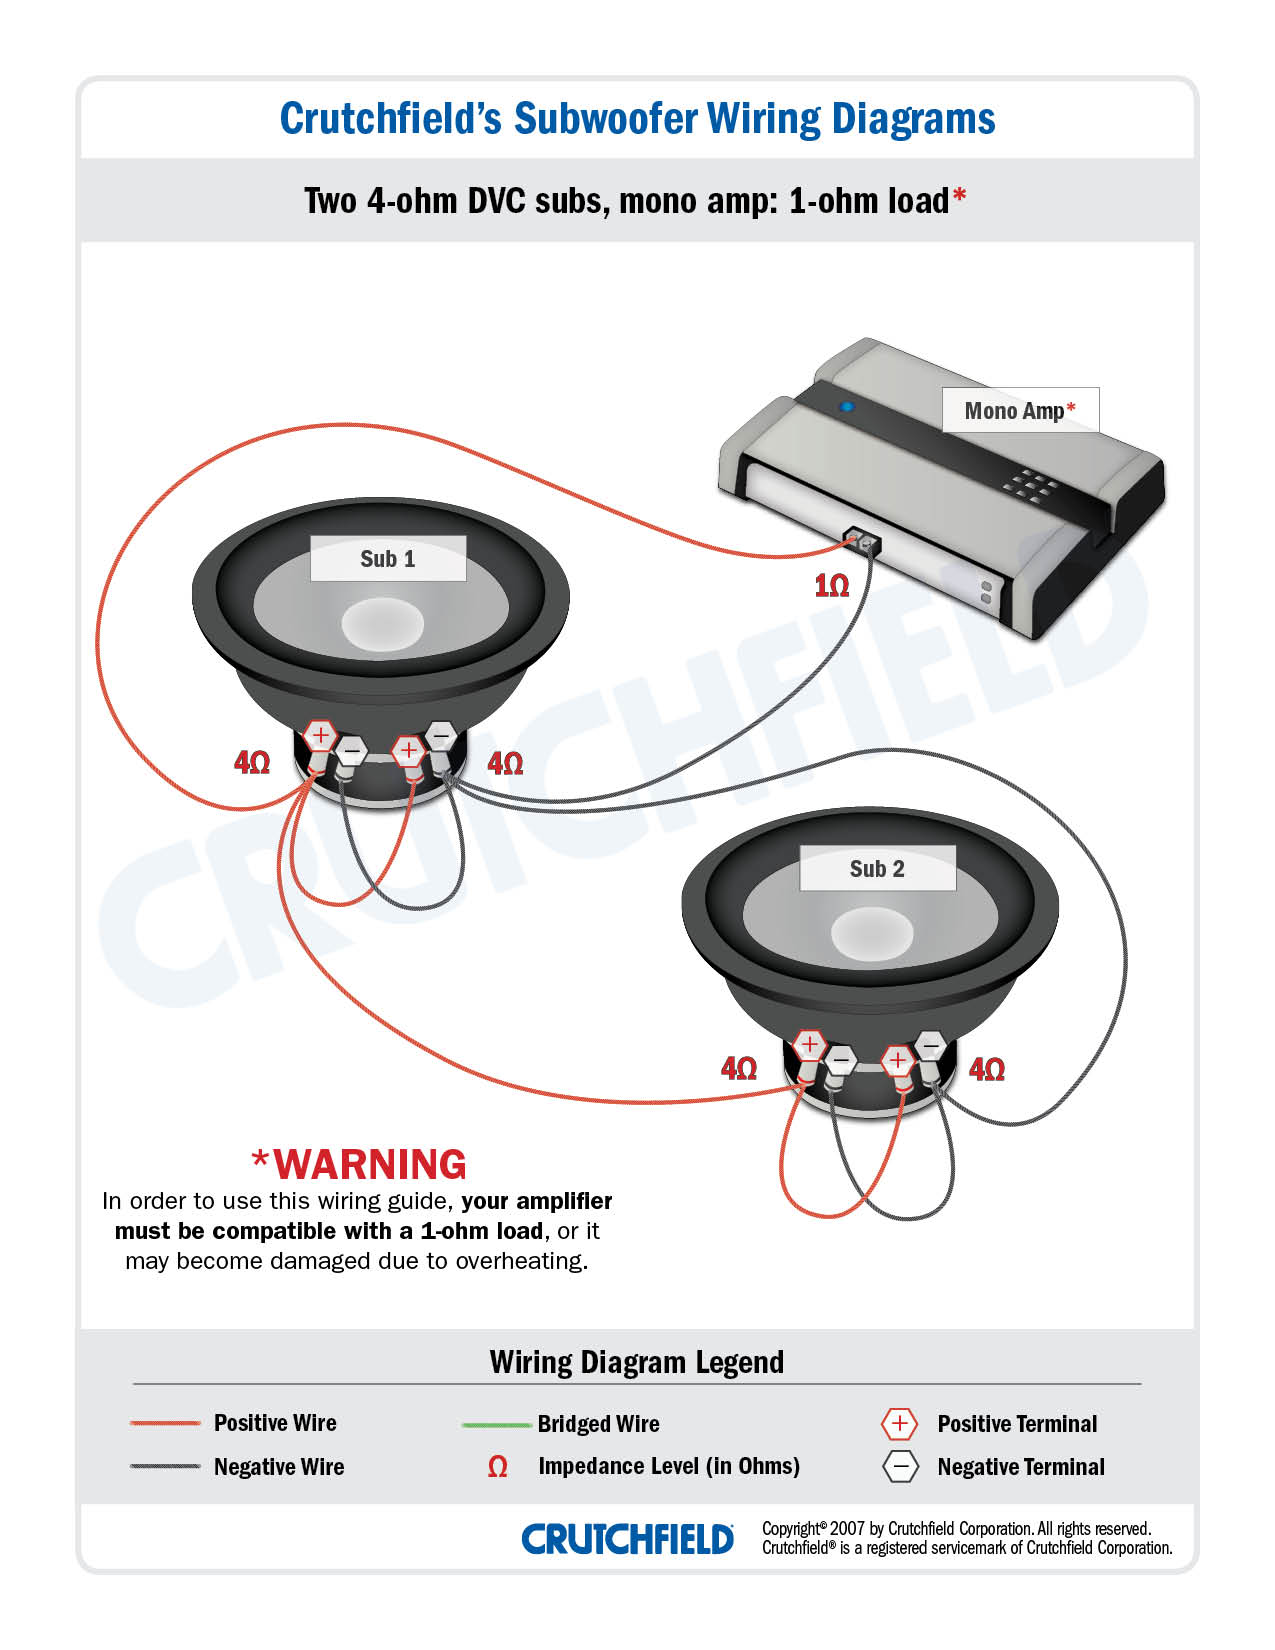 Subwoofer Wiring Diagrams How To Wire Your Subs Series Speaker As An Alternative You Could Each Sub A Set Of Output Terminals Mono 1 Channel Amp Has 2 Sets Wired Together